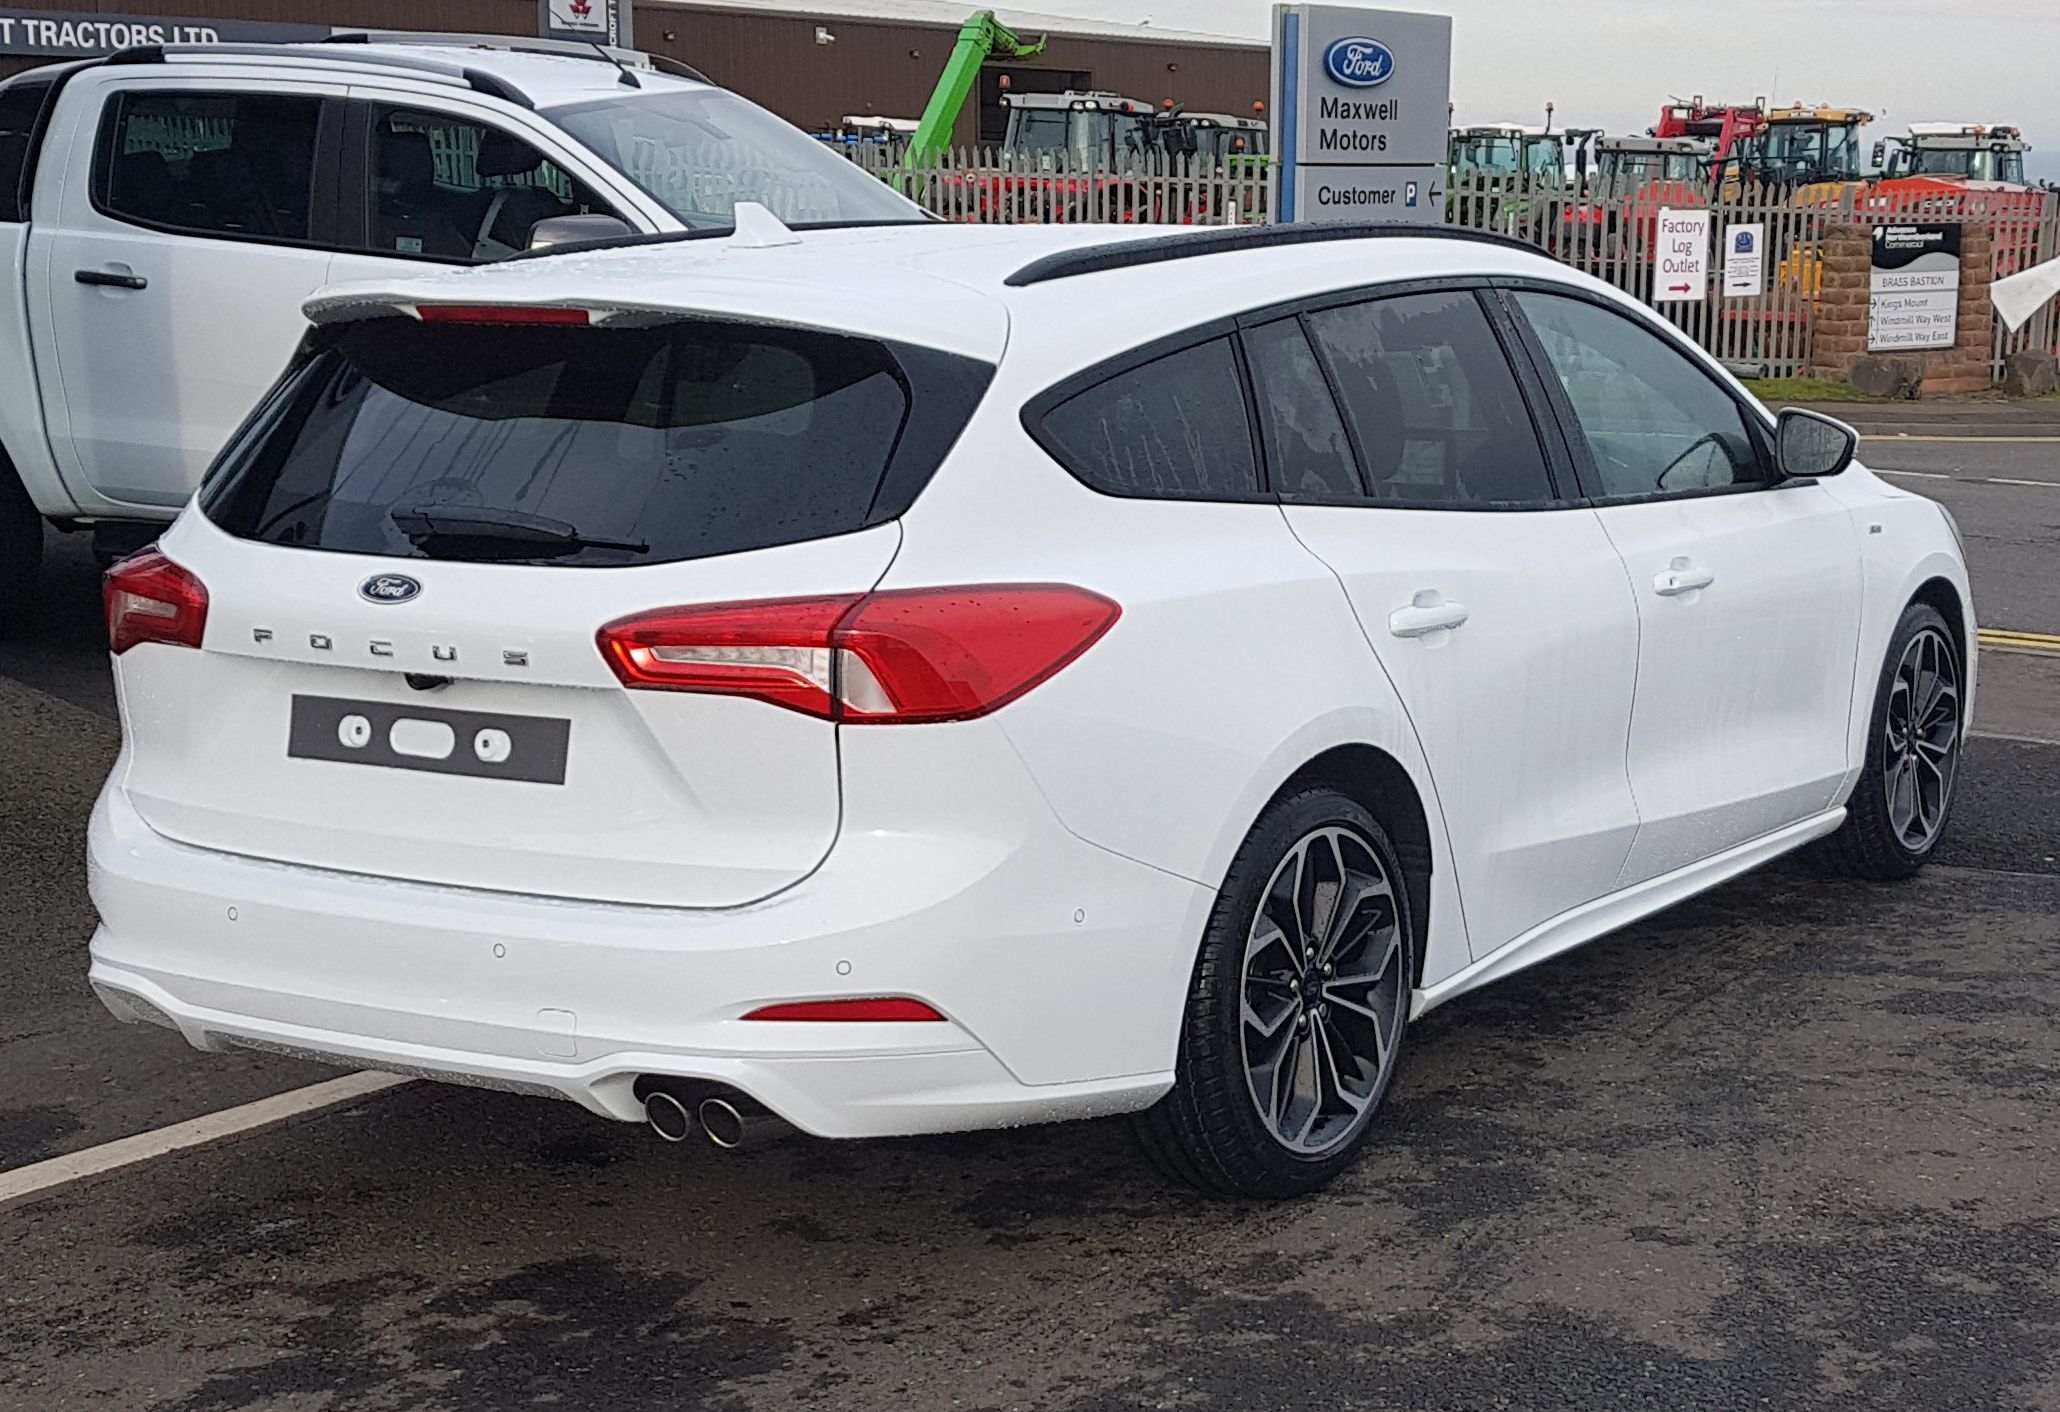 NEW FOCUS ESTATE HAS LANDED!